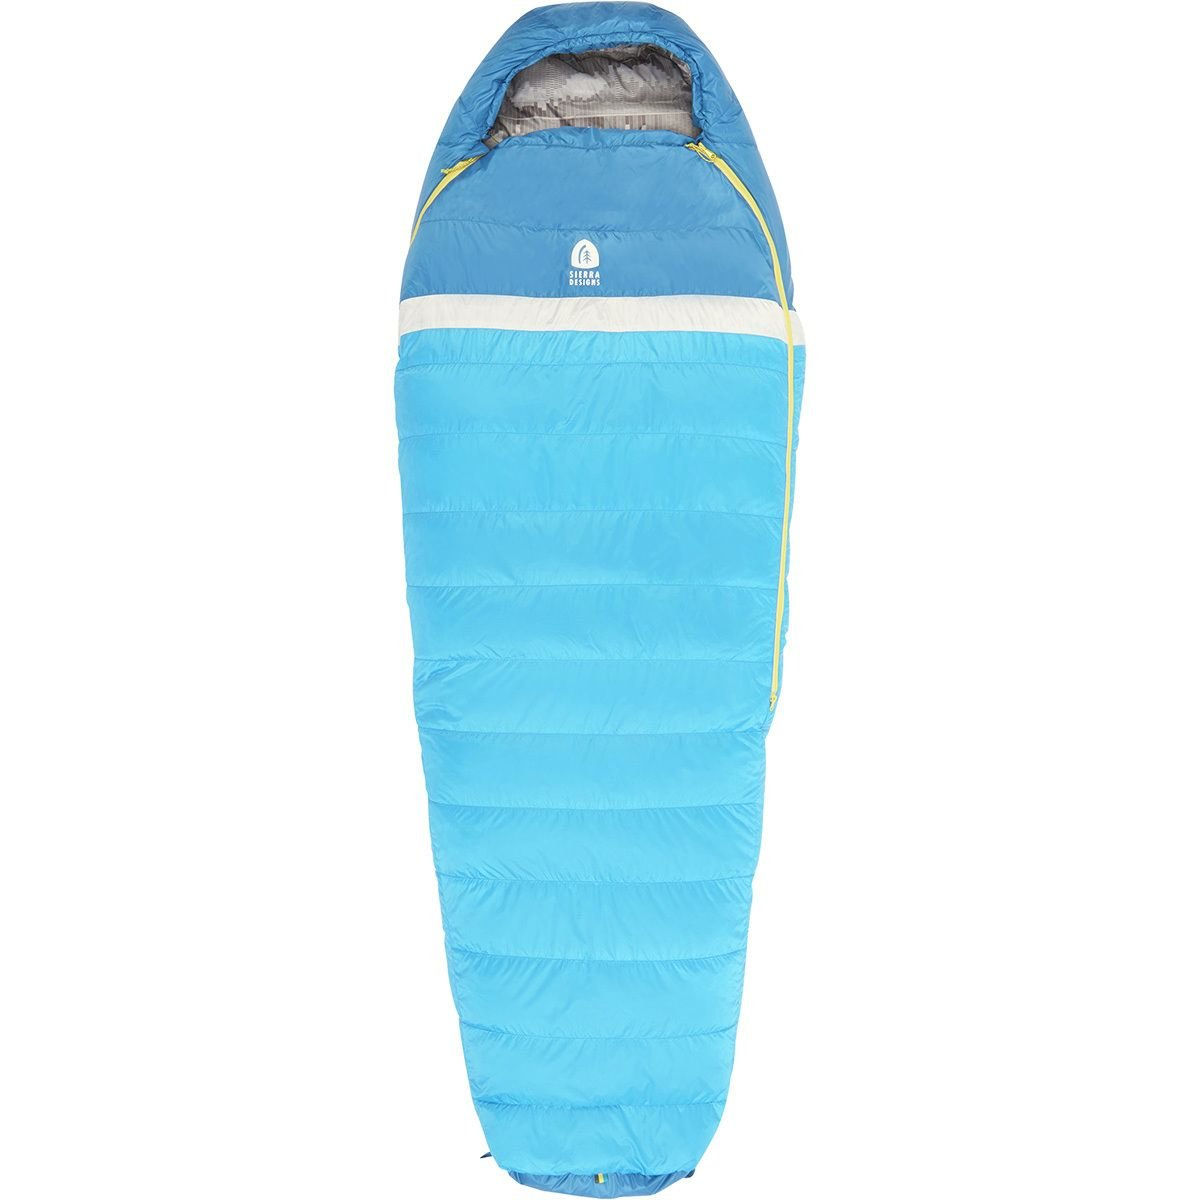 An image of Sierra Design Zissou Polyester Taffeta Sleeping Bag